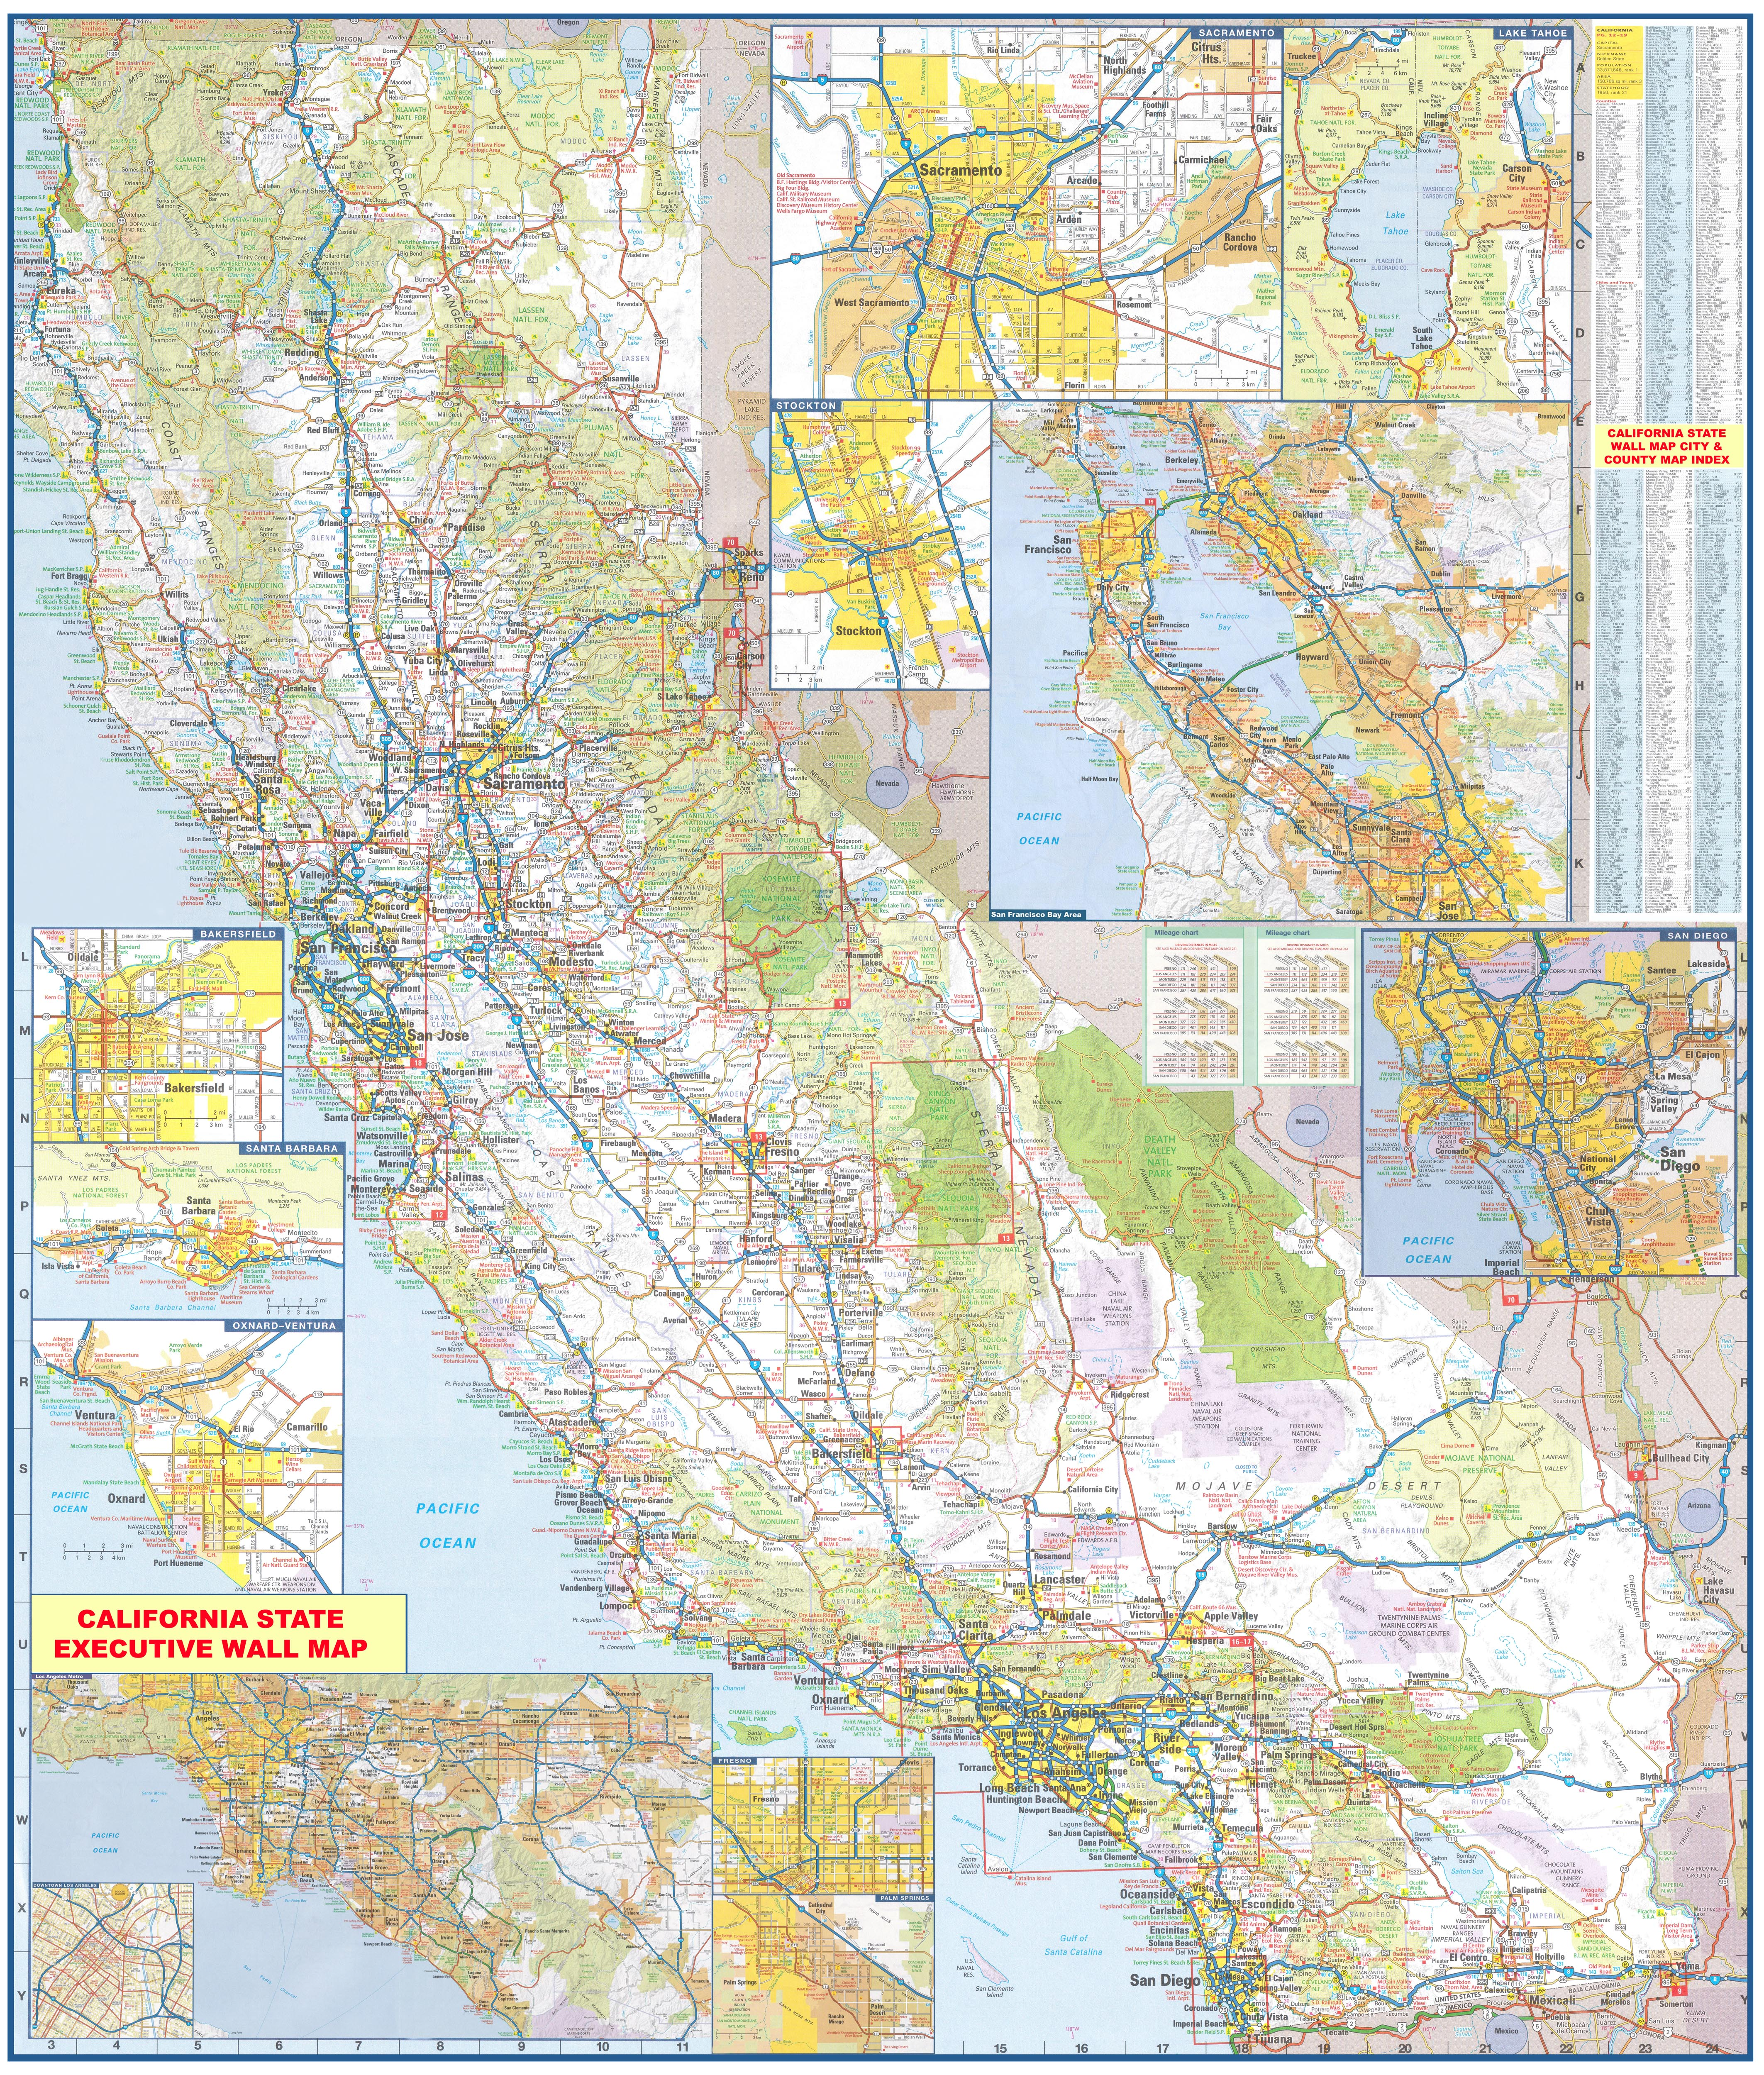 California Wall Map Executive Commercial Edition on